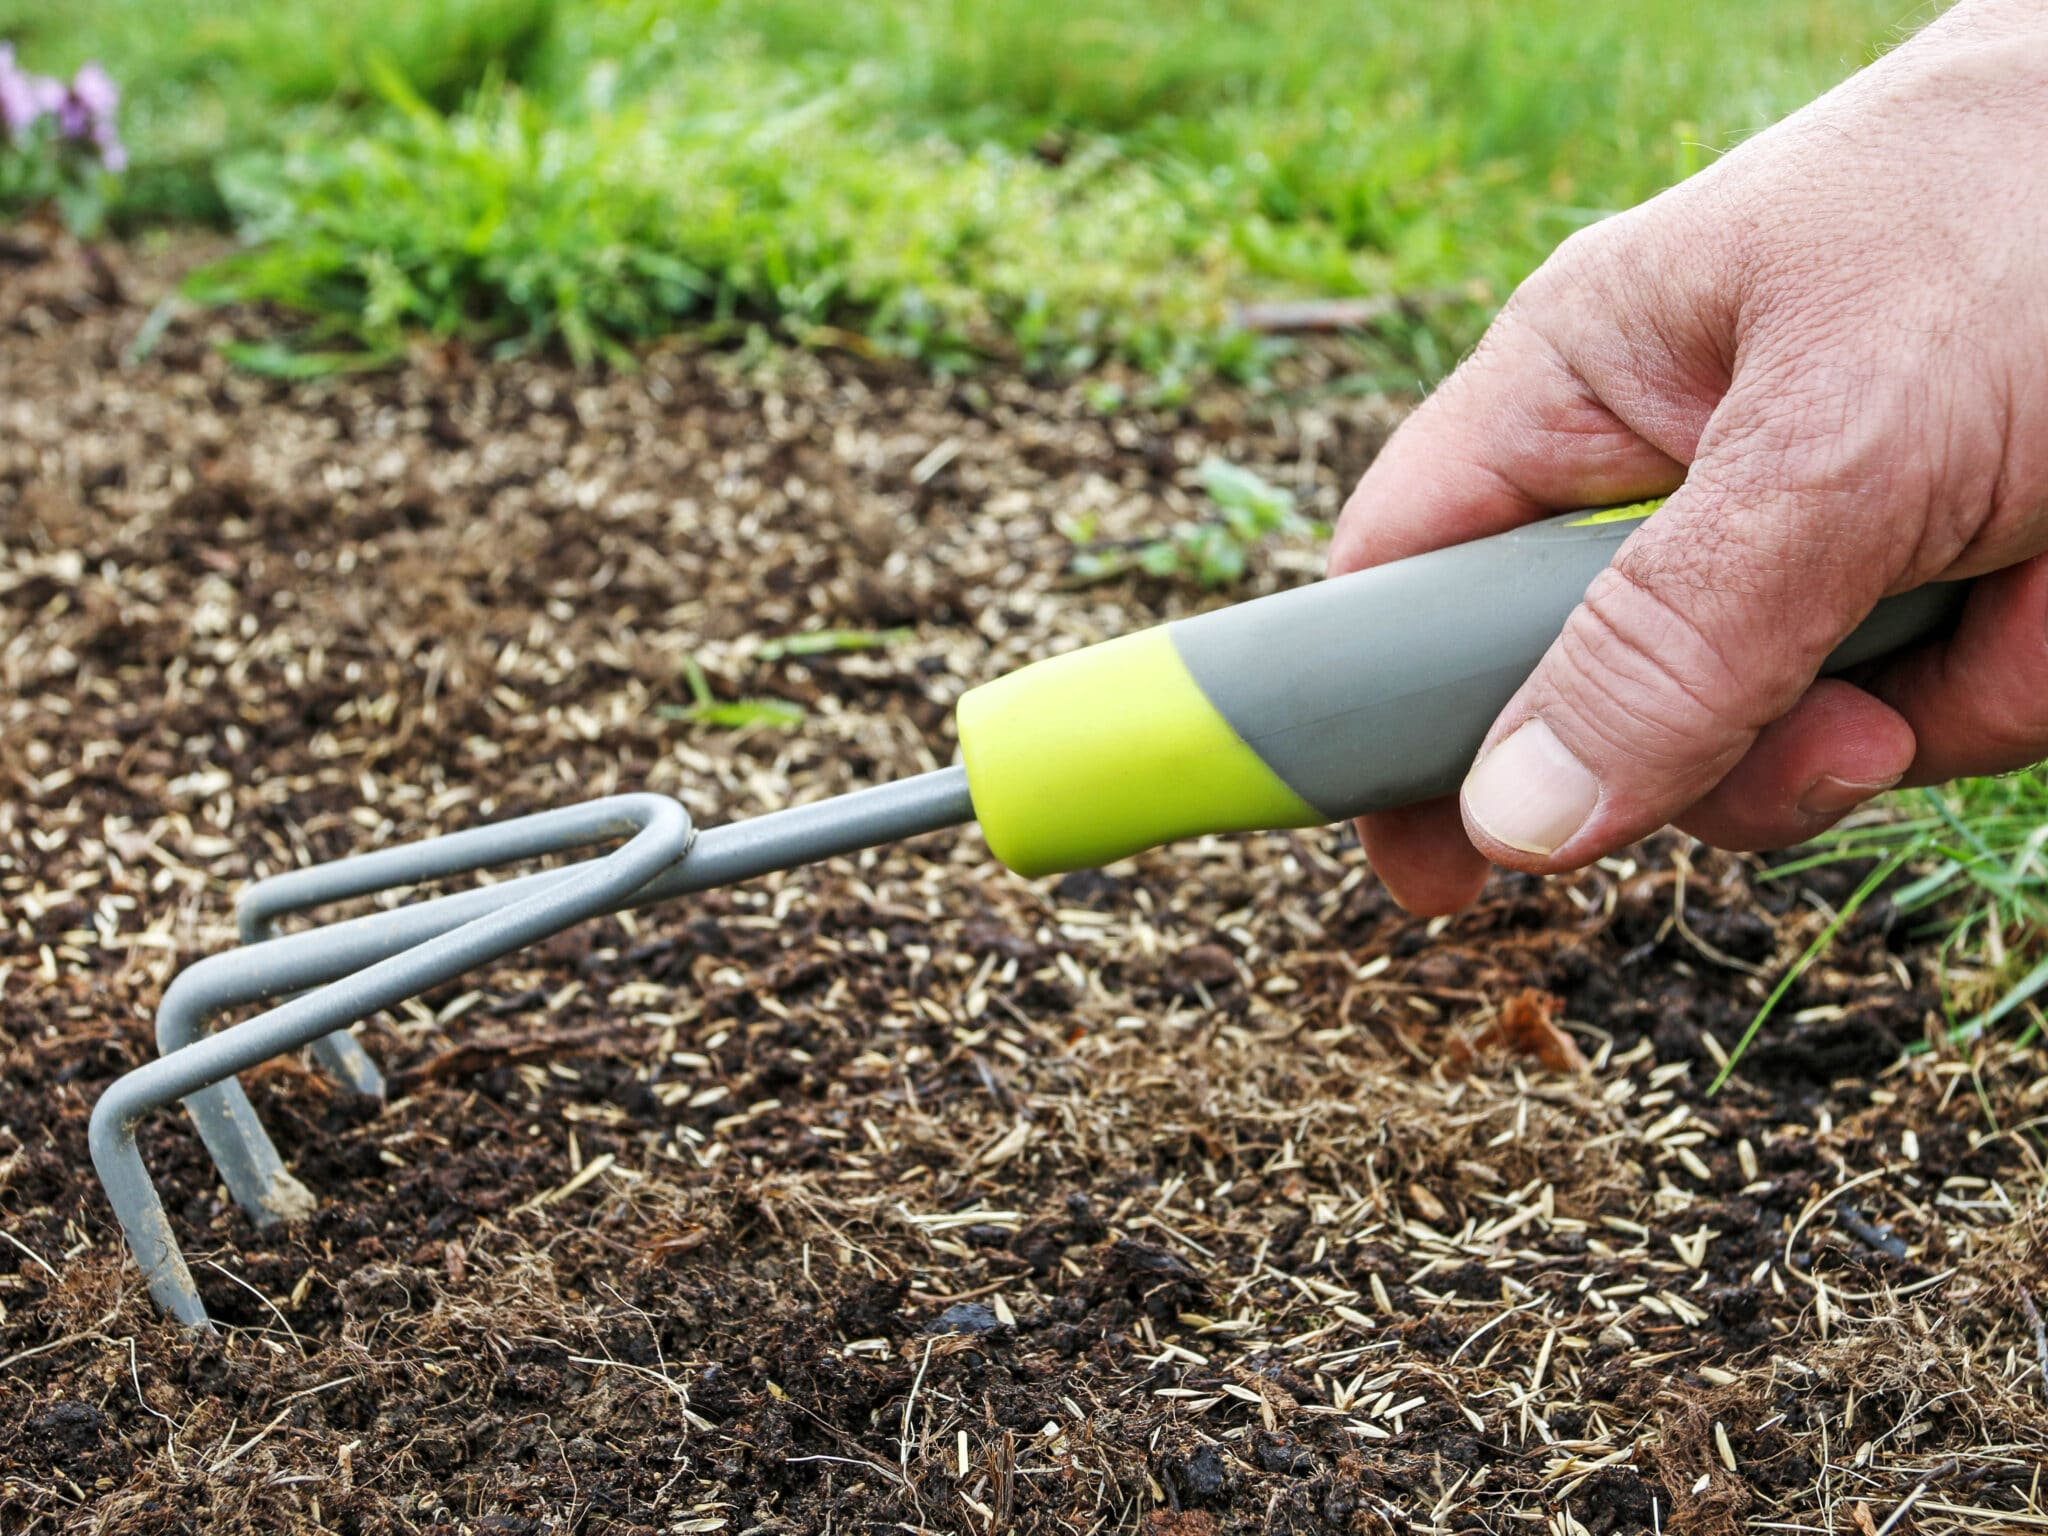 A gardening fork being pulled across soil.